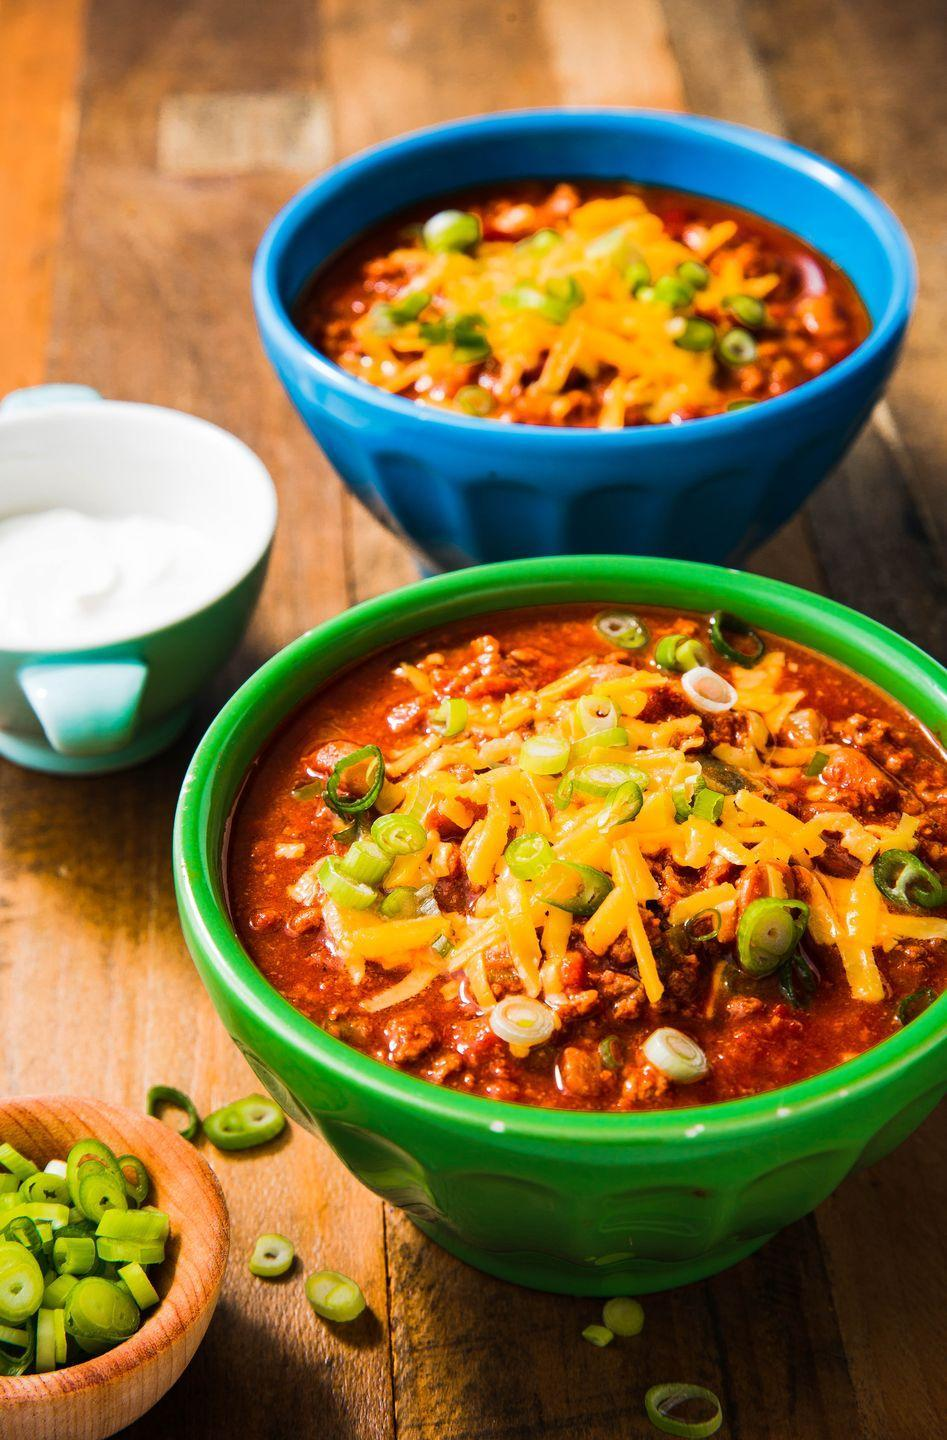 """<p>This is the perfect chili recipe, bursting with beef, green onions, tomato, and tons of sharp cheddar.</p><p>Get the recipe from <a href=""""https://www.delish.com/cooking/recipe-ideas/a23491158/wendys-copycat-chili-recipe/"""" rel=""""nofollow noopener"""" target=""""_blank"""" data-ylk=""""slk:Delish"""" class=""""link rapid-noclick-resp"""">Delish</a>. </p>"""